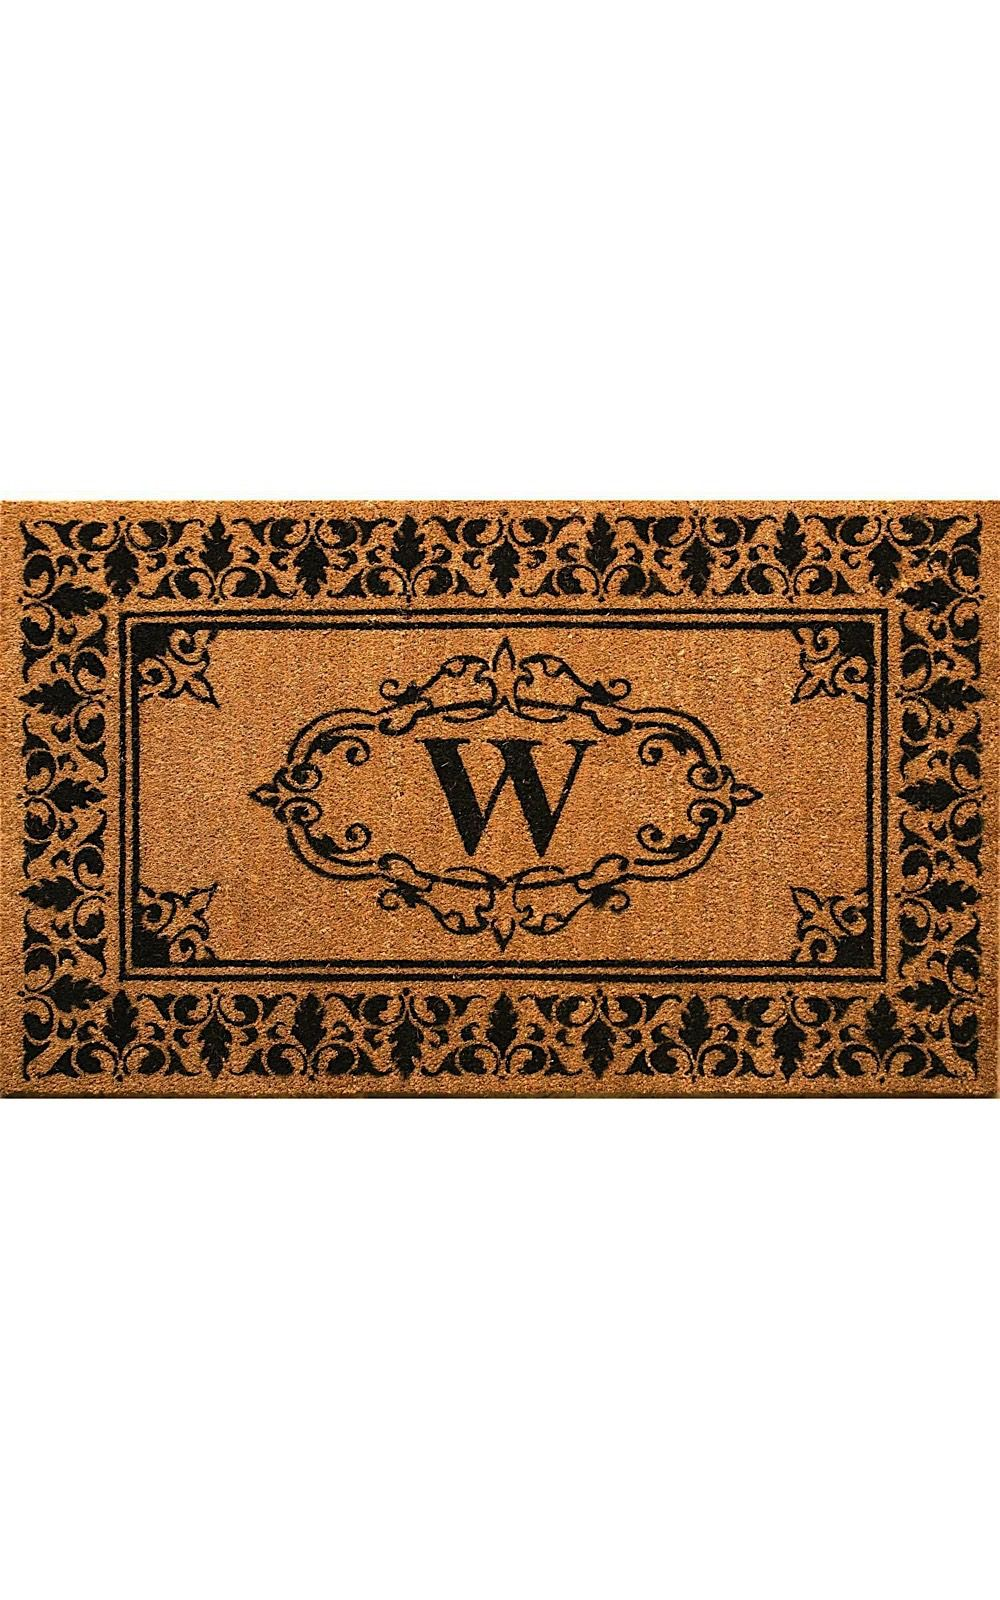 nuloom letter w indoor/outdoor area rug collection